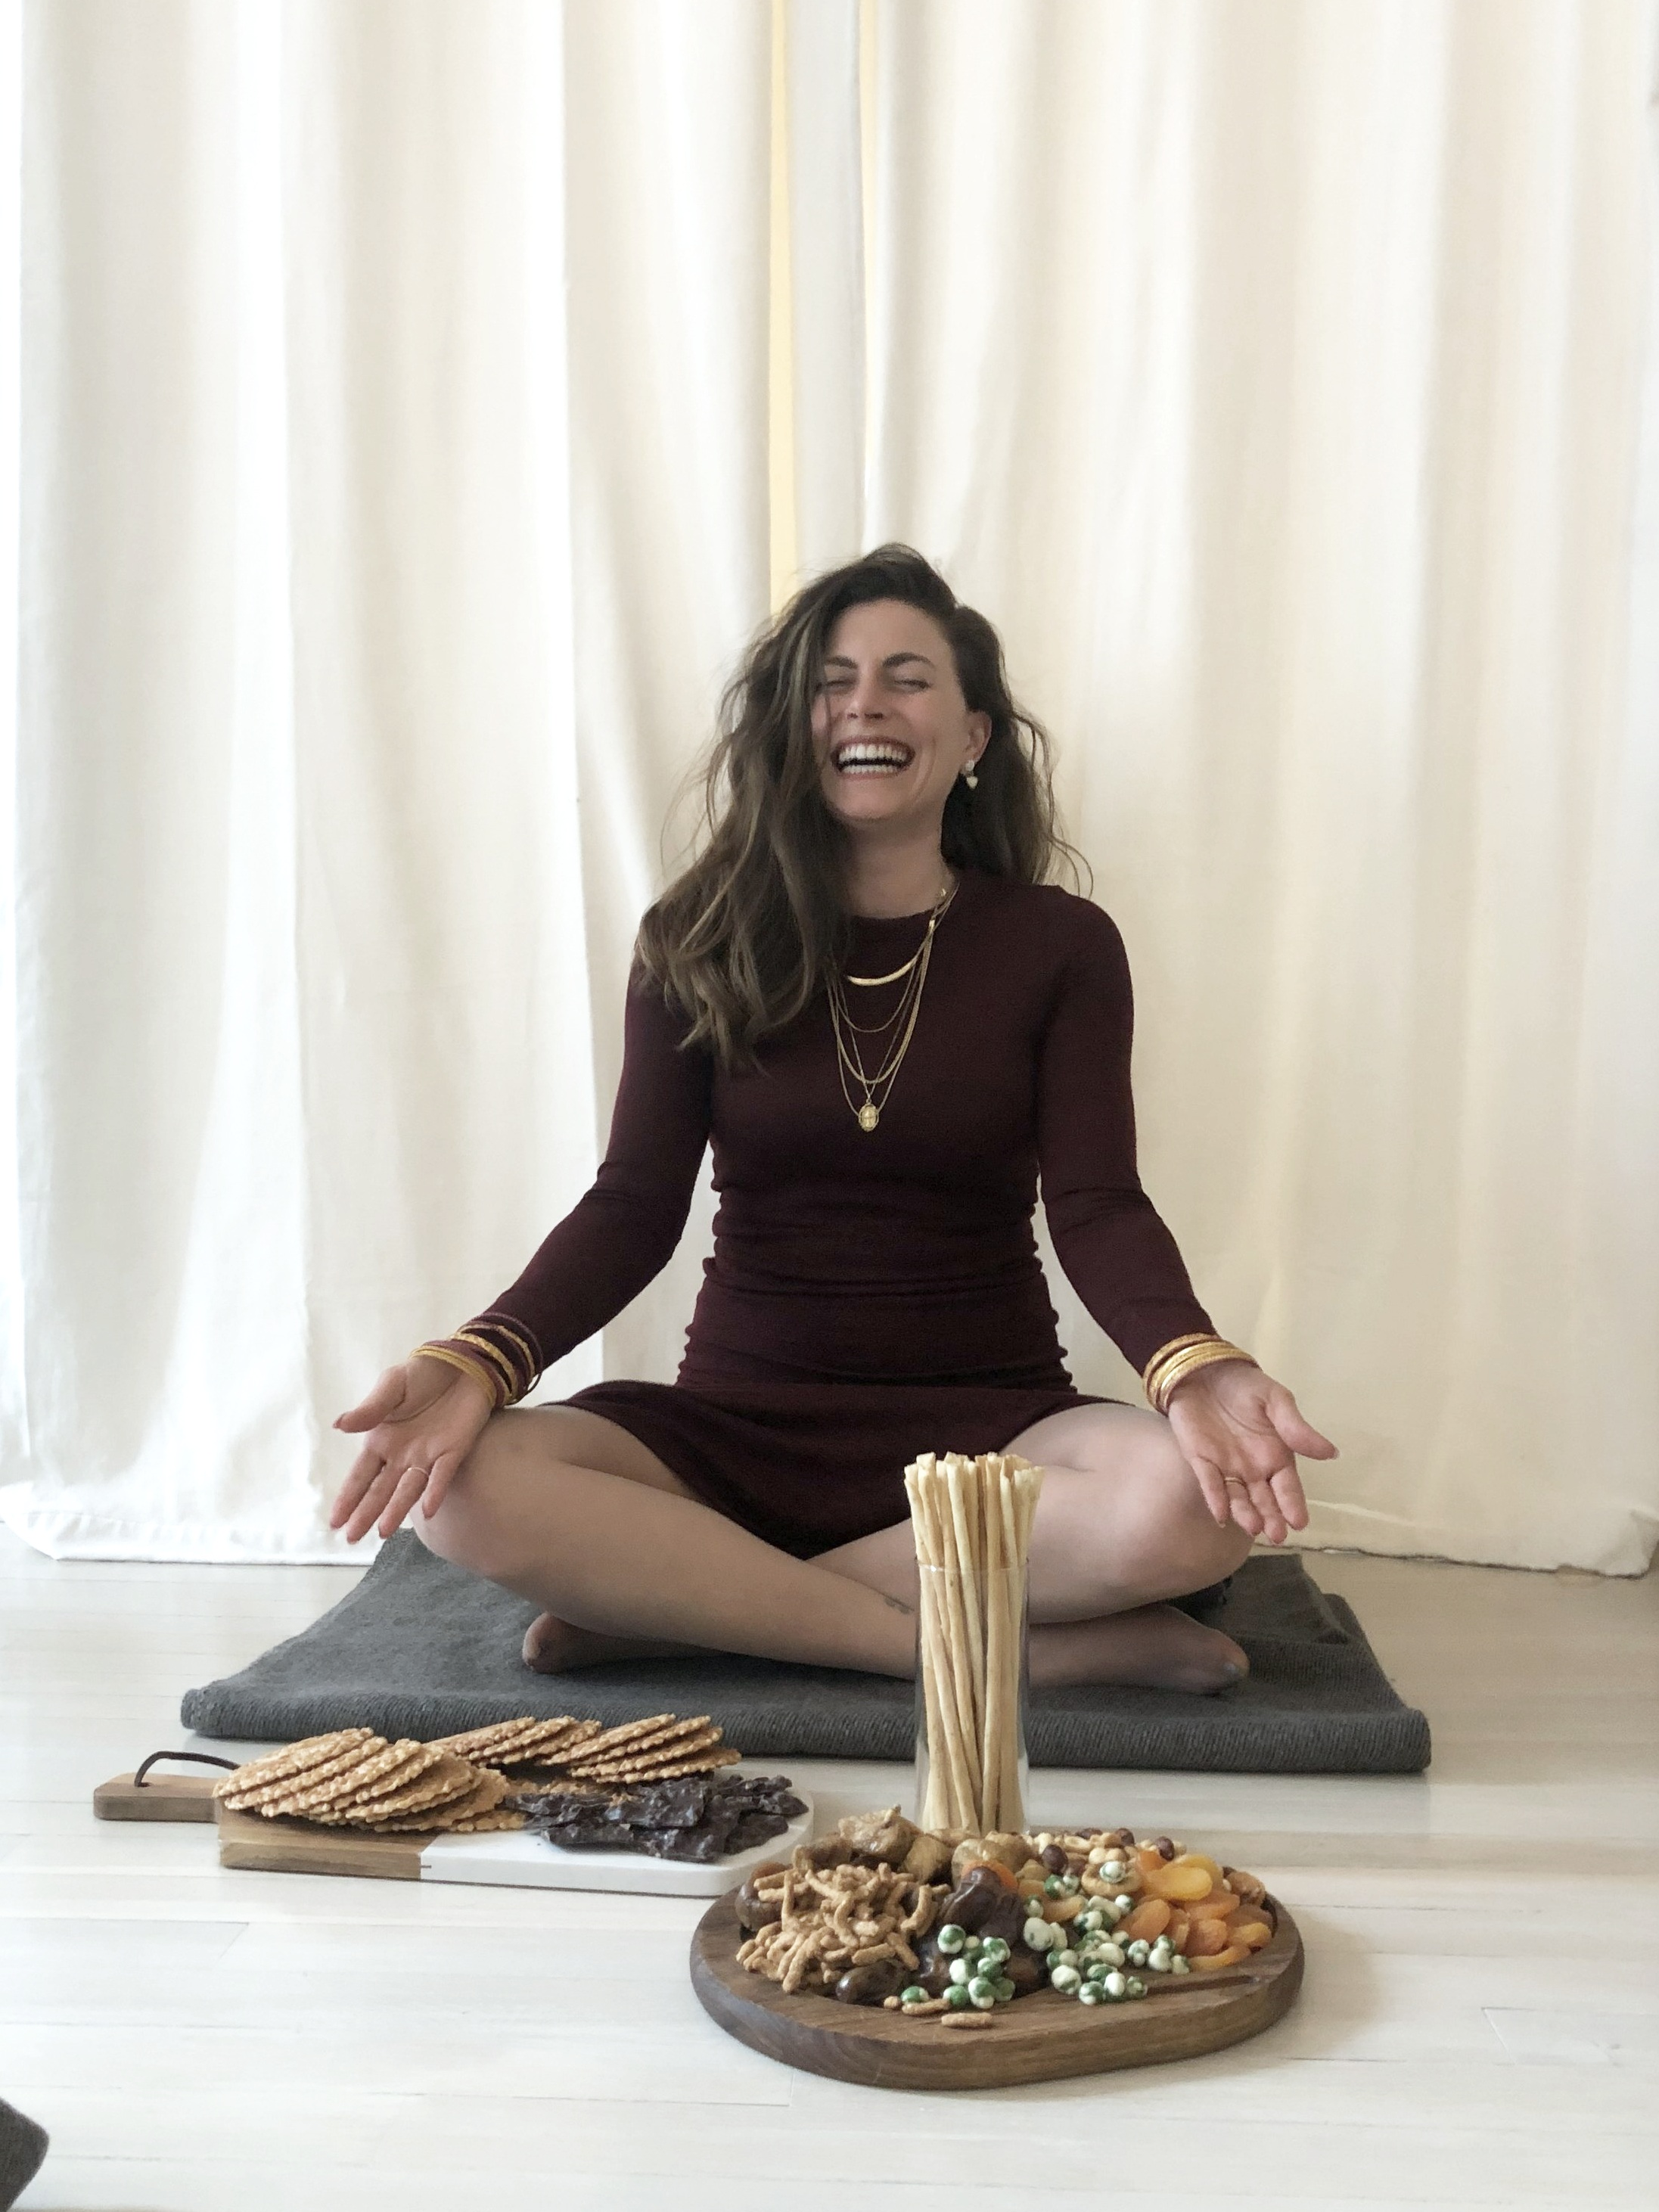 intro to ayurveda + birth charts | $300 - a 5-week introductory course on the fundamentals of Ayurveda, paired with Ayurvedic astrology birth chart readings for optimized self care.Lead by Allison Joy PhillipsEvery alternative WednesdayJune 26-August 21 at 7pm